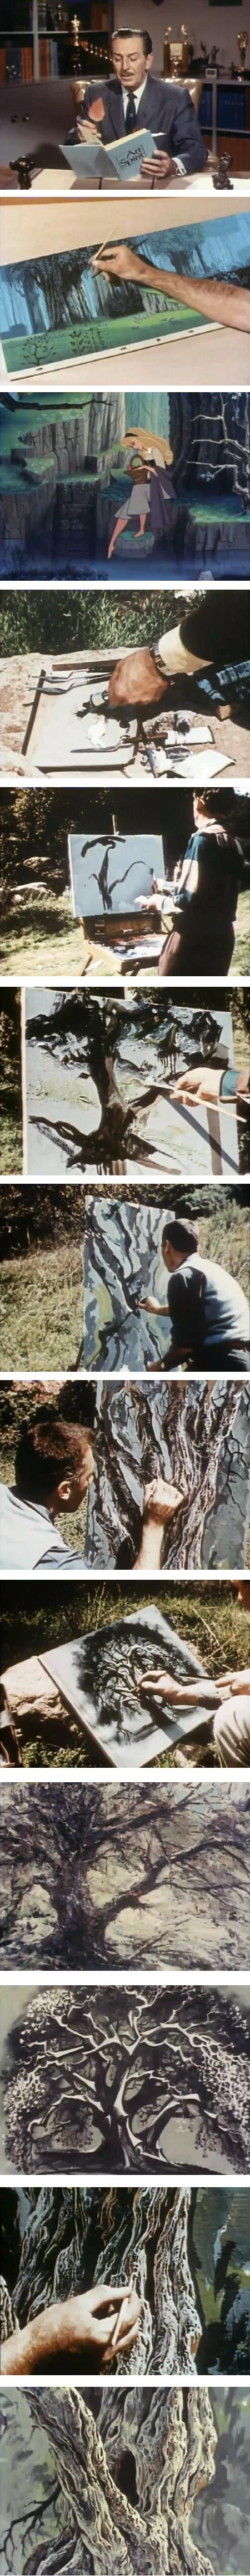 Classic Disney animators paint a tree: Marc Davis, Eyvind Earle, Joshua Meador and Walt Peregoy. So happy to run across this. I first saw this segment when I was a kid and it was instrumental in teaching me that a subject may be interpreted in different and perfectly legitimate ways - not everyone sees the same thing in the same way. A real eye-opener for a fledgling artist.